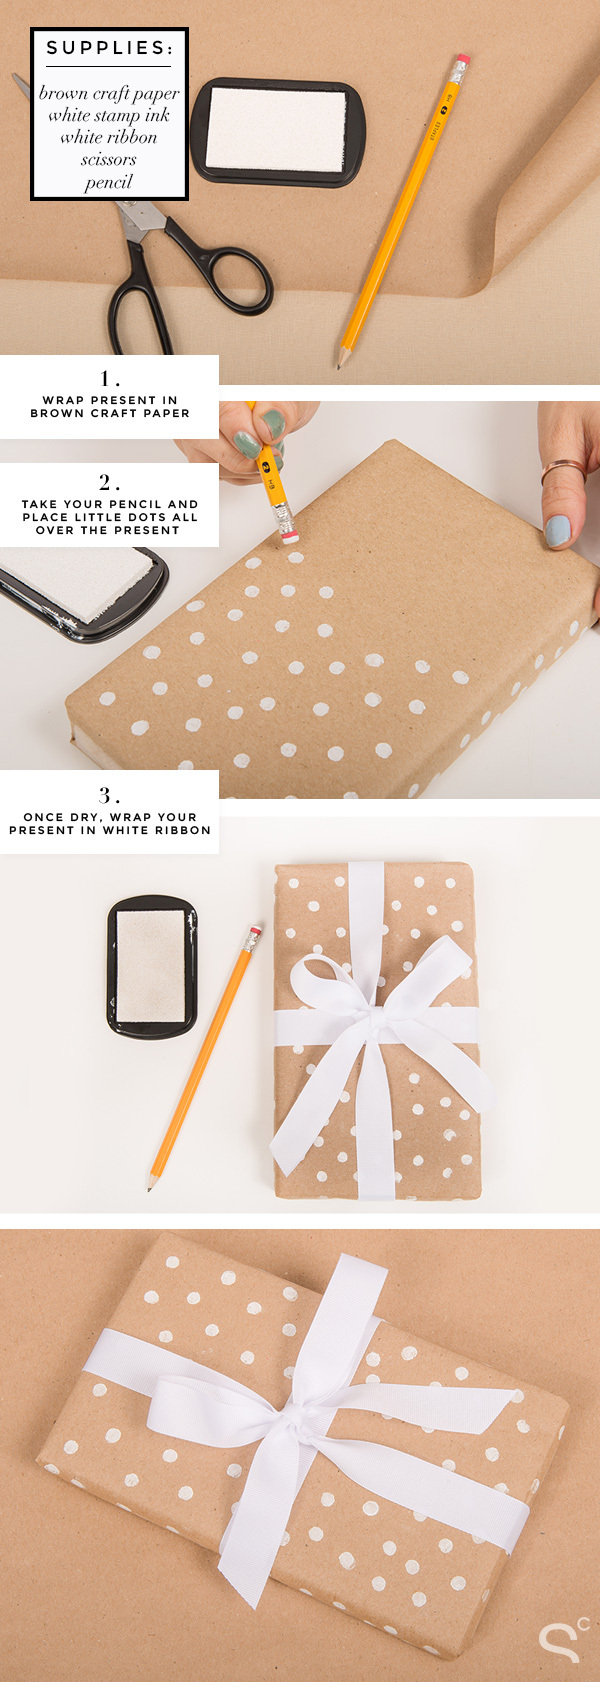 diy-gift-wrapping-ideas-polka-dot.jpg